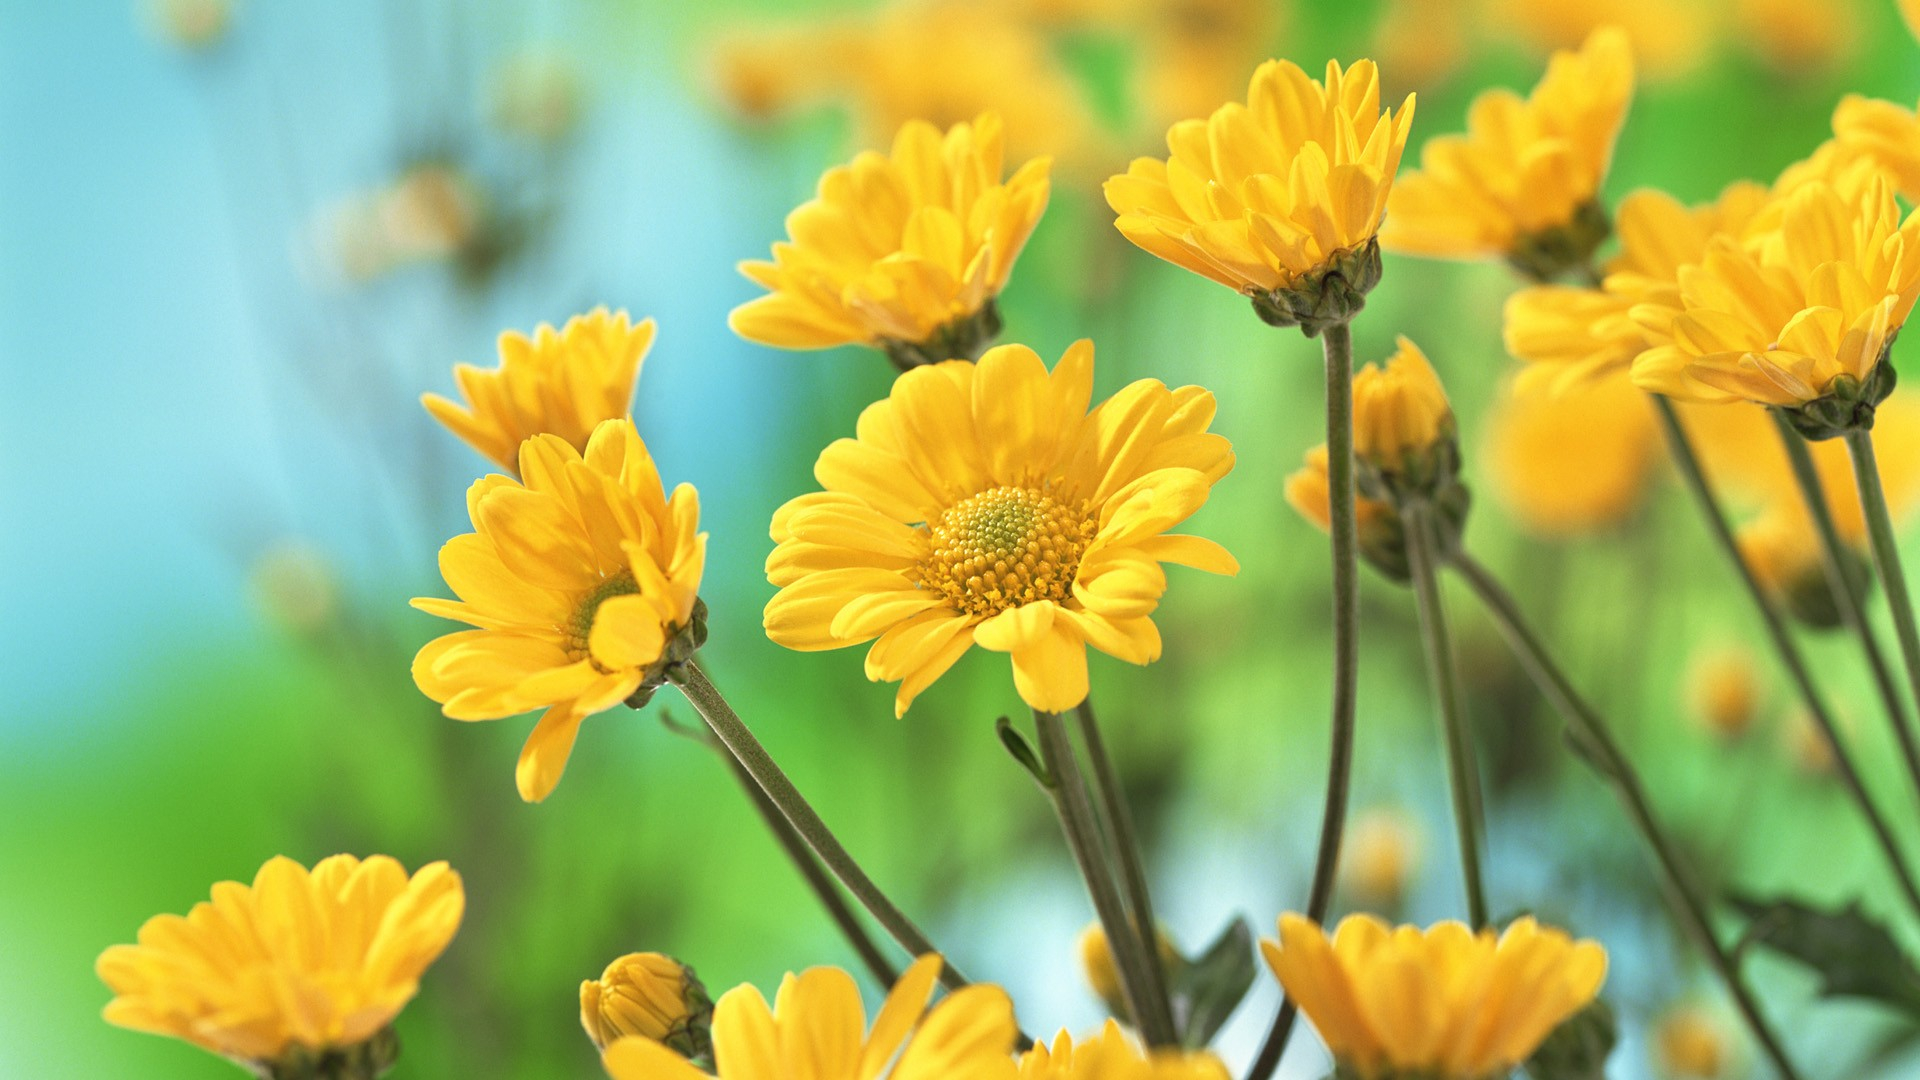 Wallpapers yellow flowers top wallpapers wallpapers yellow flowers mightylinksfo